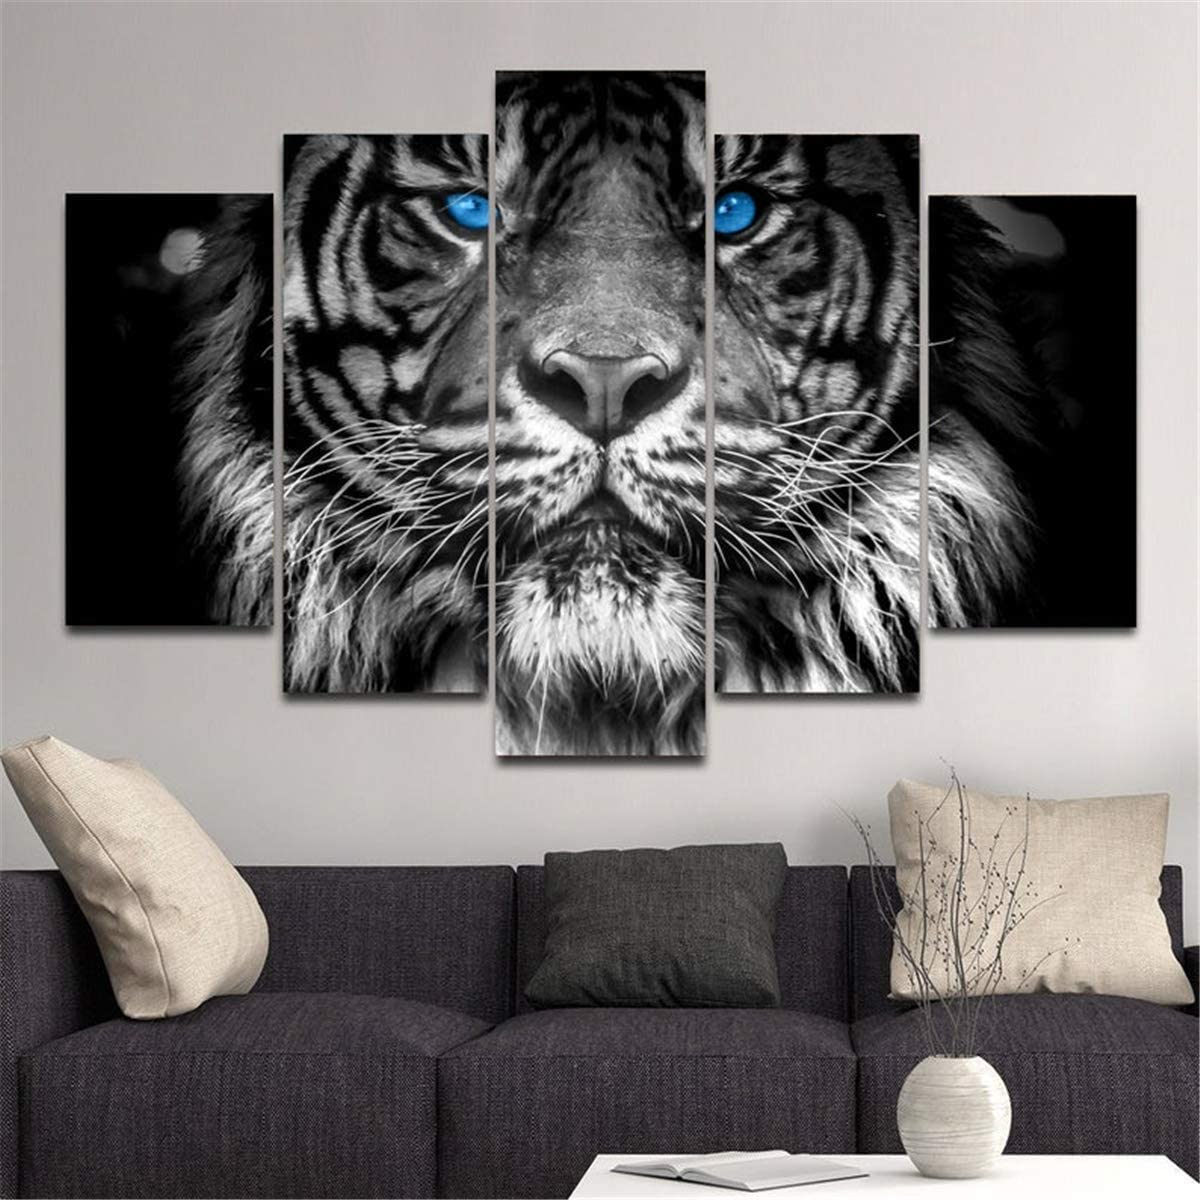 JESC 5 Panels Canvas Wall Art Blue Eyed Tiger Animal Painting Black White Canvas Poster for Wall Decor Men Living Room Tiger Lover Gift Bedroom Stretched and Framed Ready to Hang